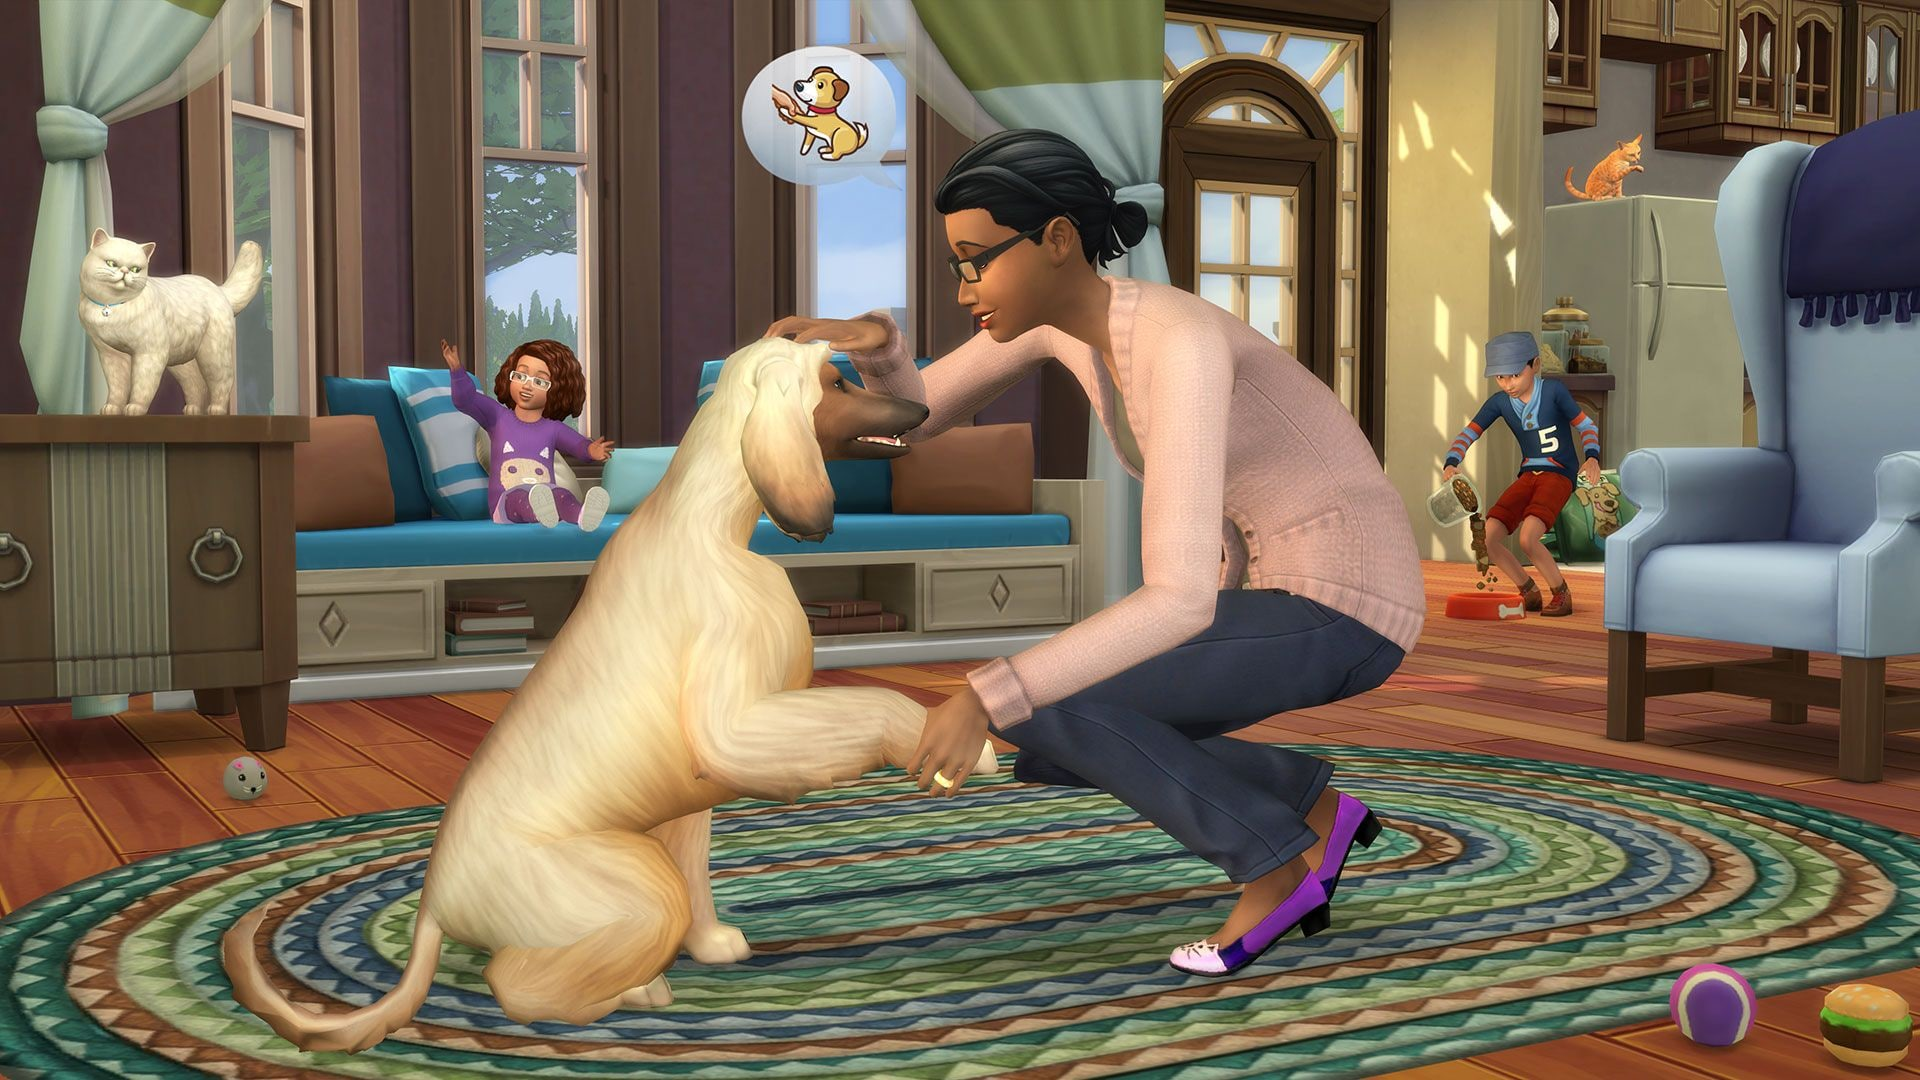 The Sims 4: Cats & Dogs Origin PC Key GLOBAL - 4